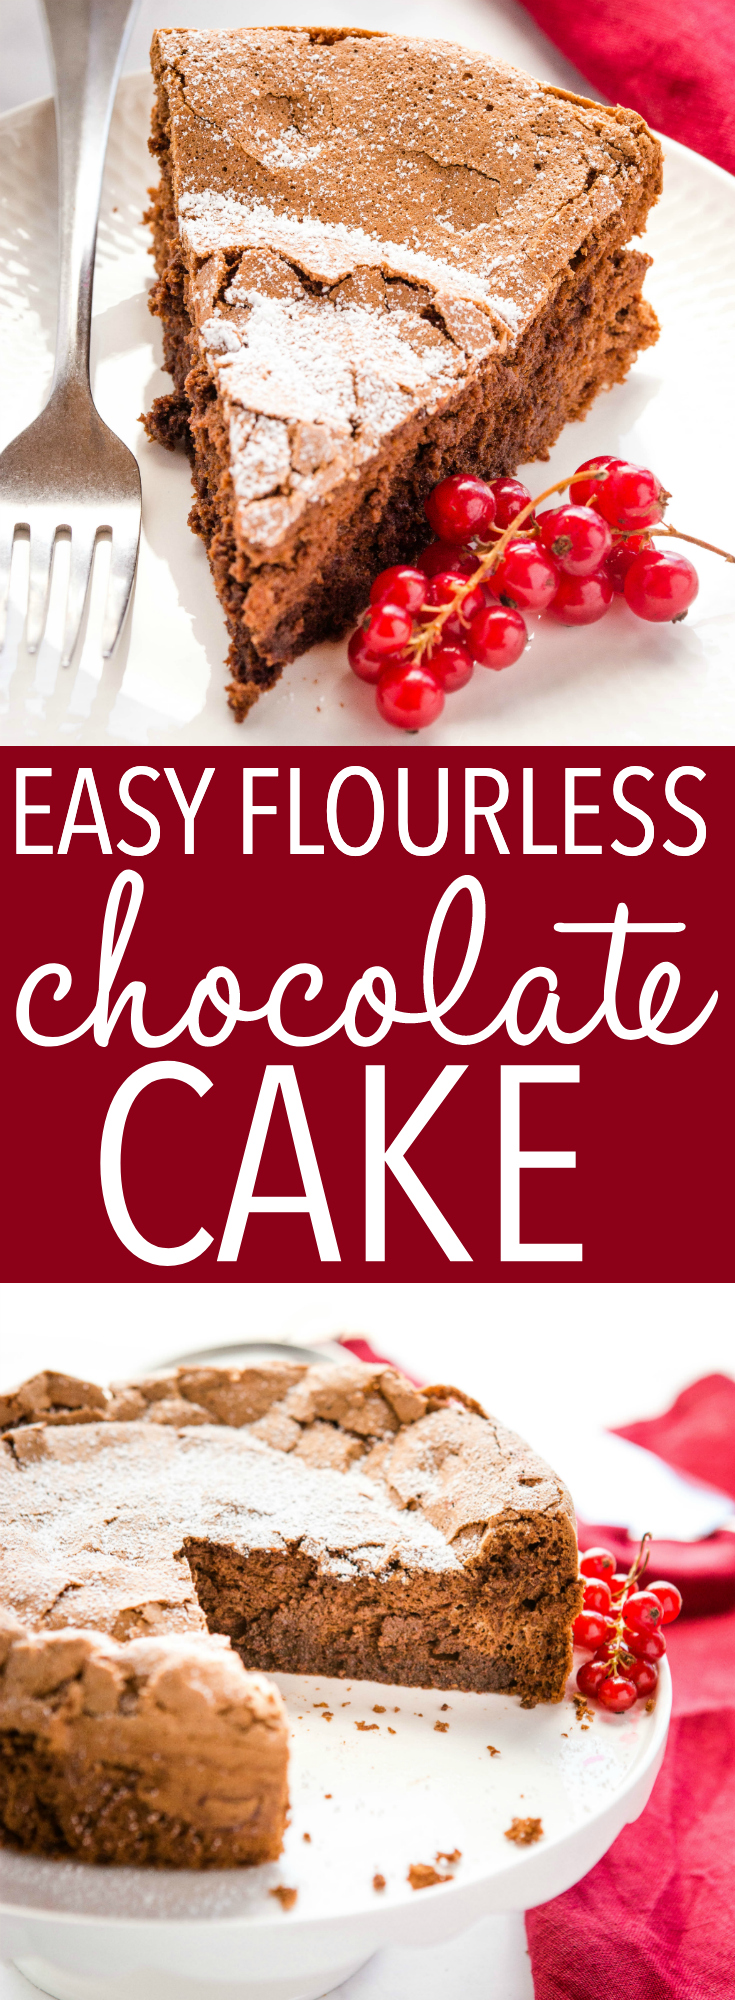 This Easy Flourless Chocolate Cake is ultra-decadent, gluten-free, and perfectly dense and chocolatey! Only 6 ingredients! Recipe from thebusybaker.ca! #flourless #glutenfree #chocolate #cake #dessert #decadent #homemade #sweet #restaurantquality #flourlesschocolatecake via @busybakerblog